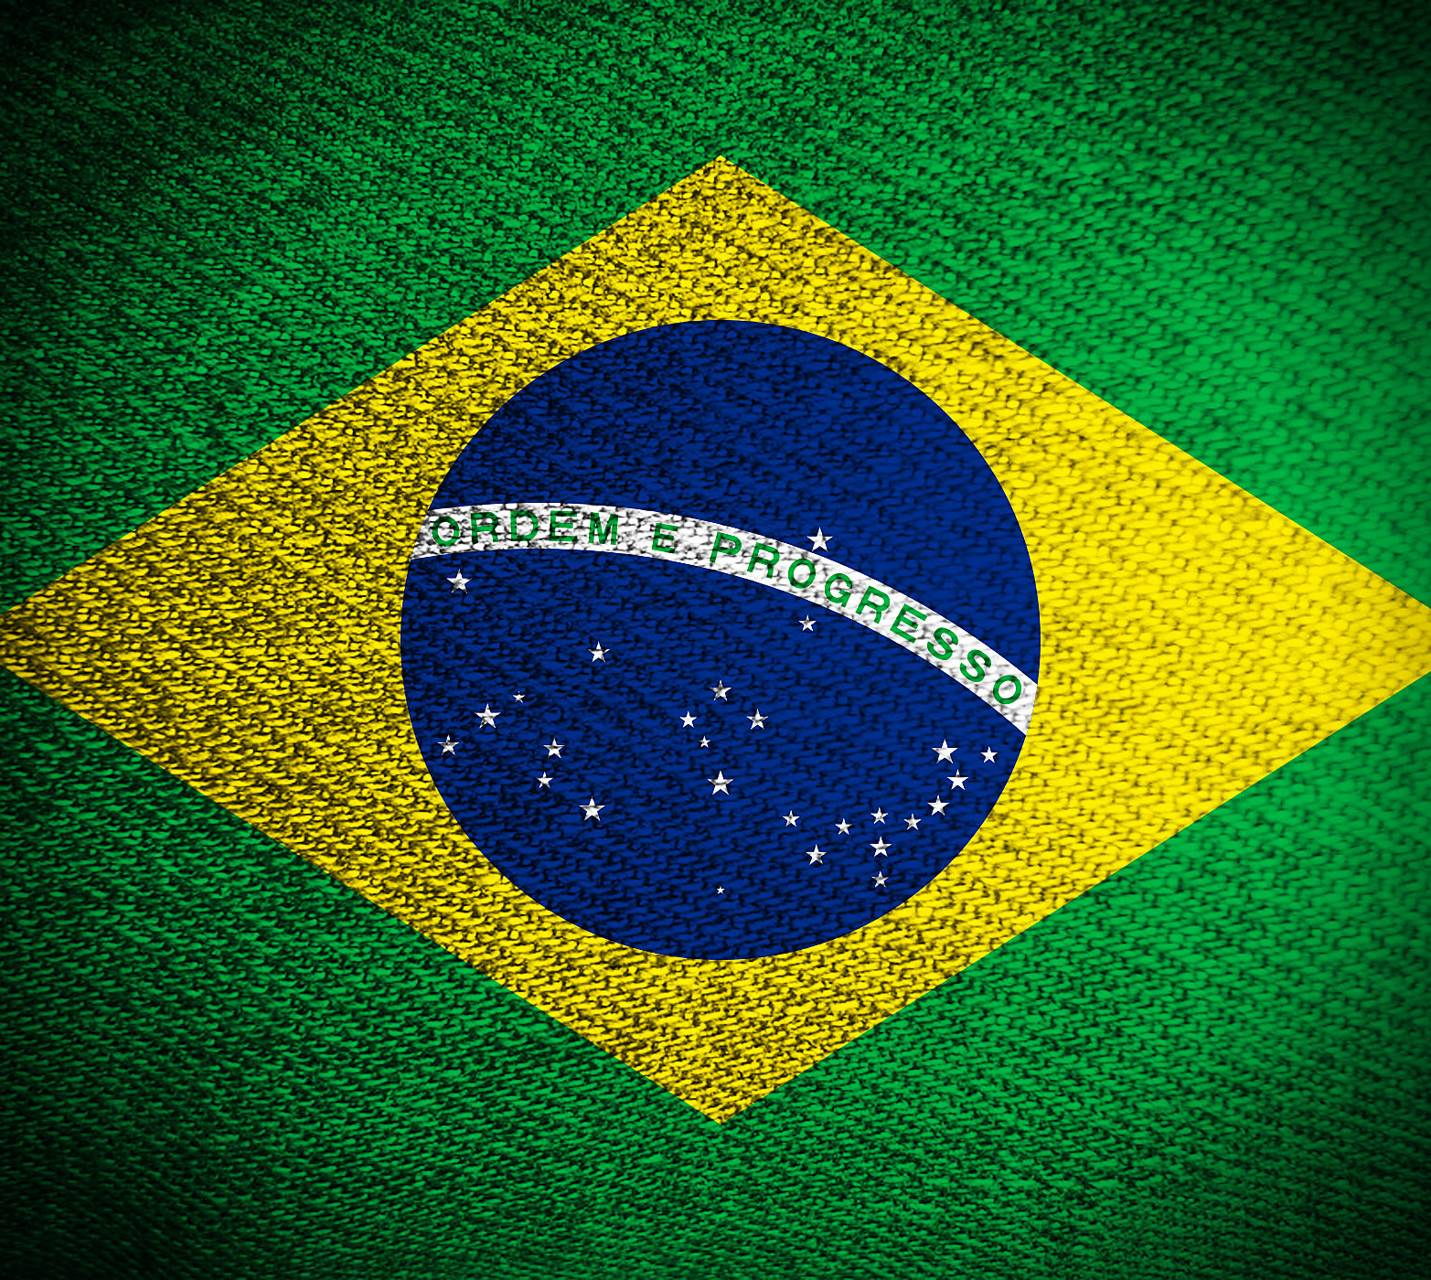 Brasil On Cloth